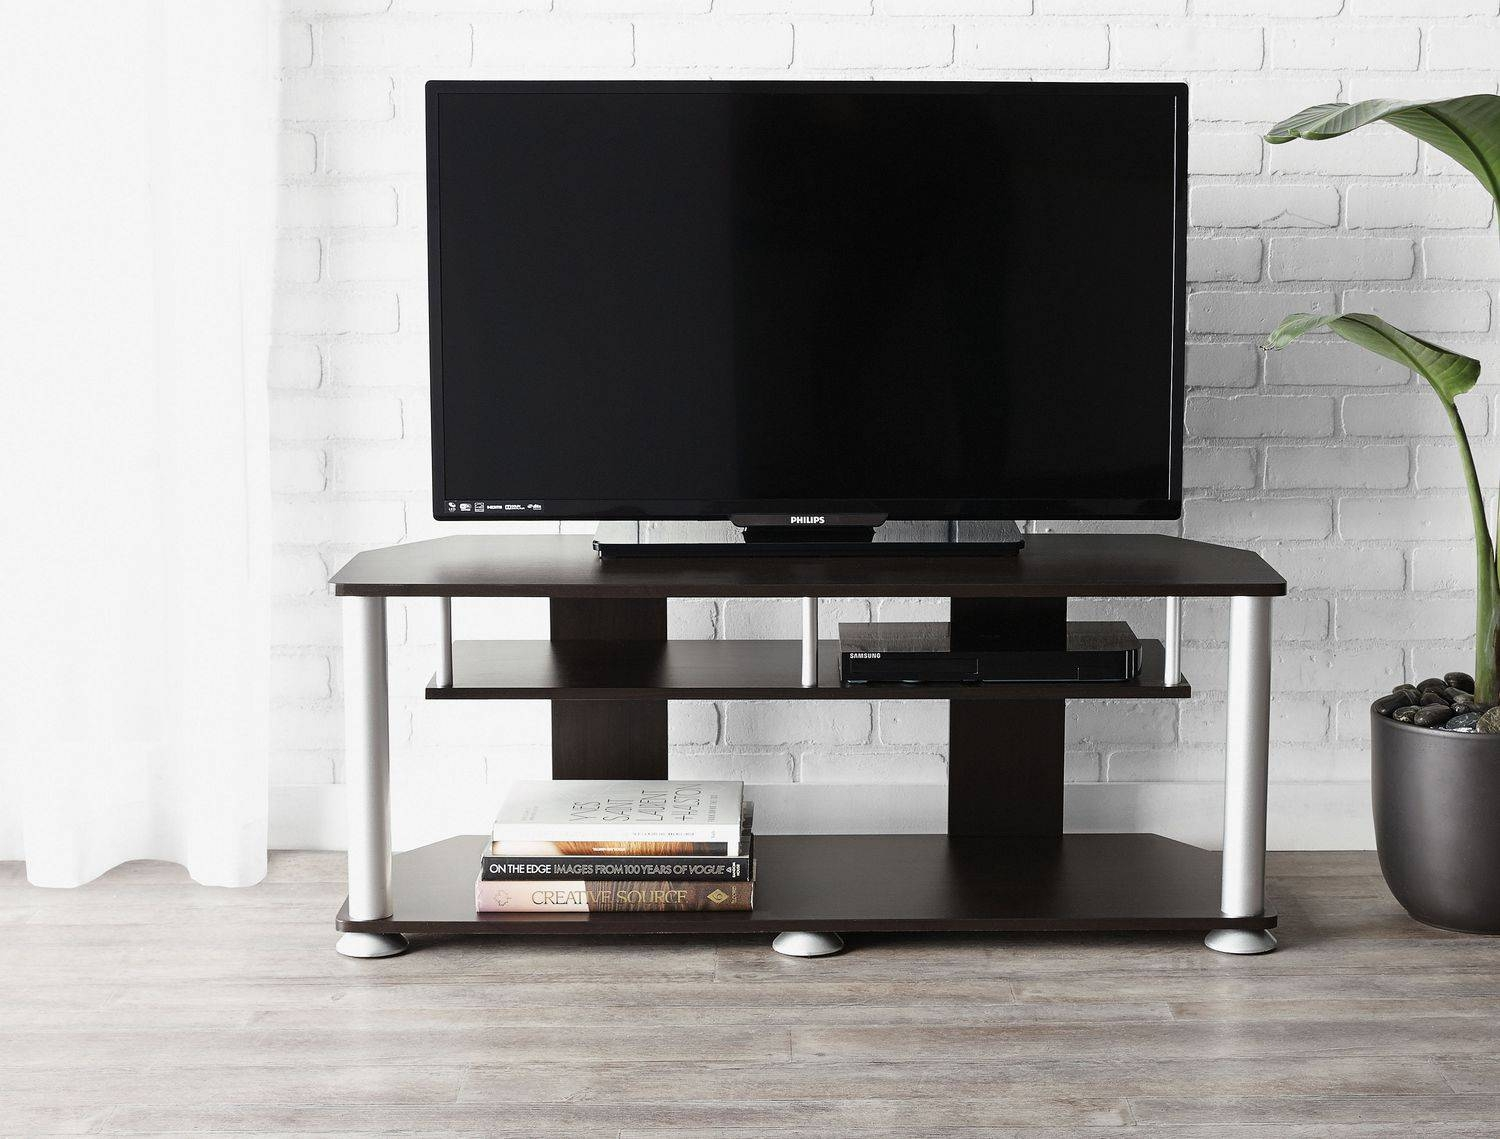 Mainstays Tv Stand | Walmart Canada For Tv Stands For 43 Inch Tv (View 3 of 15)